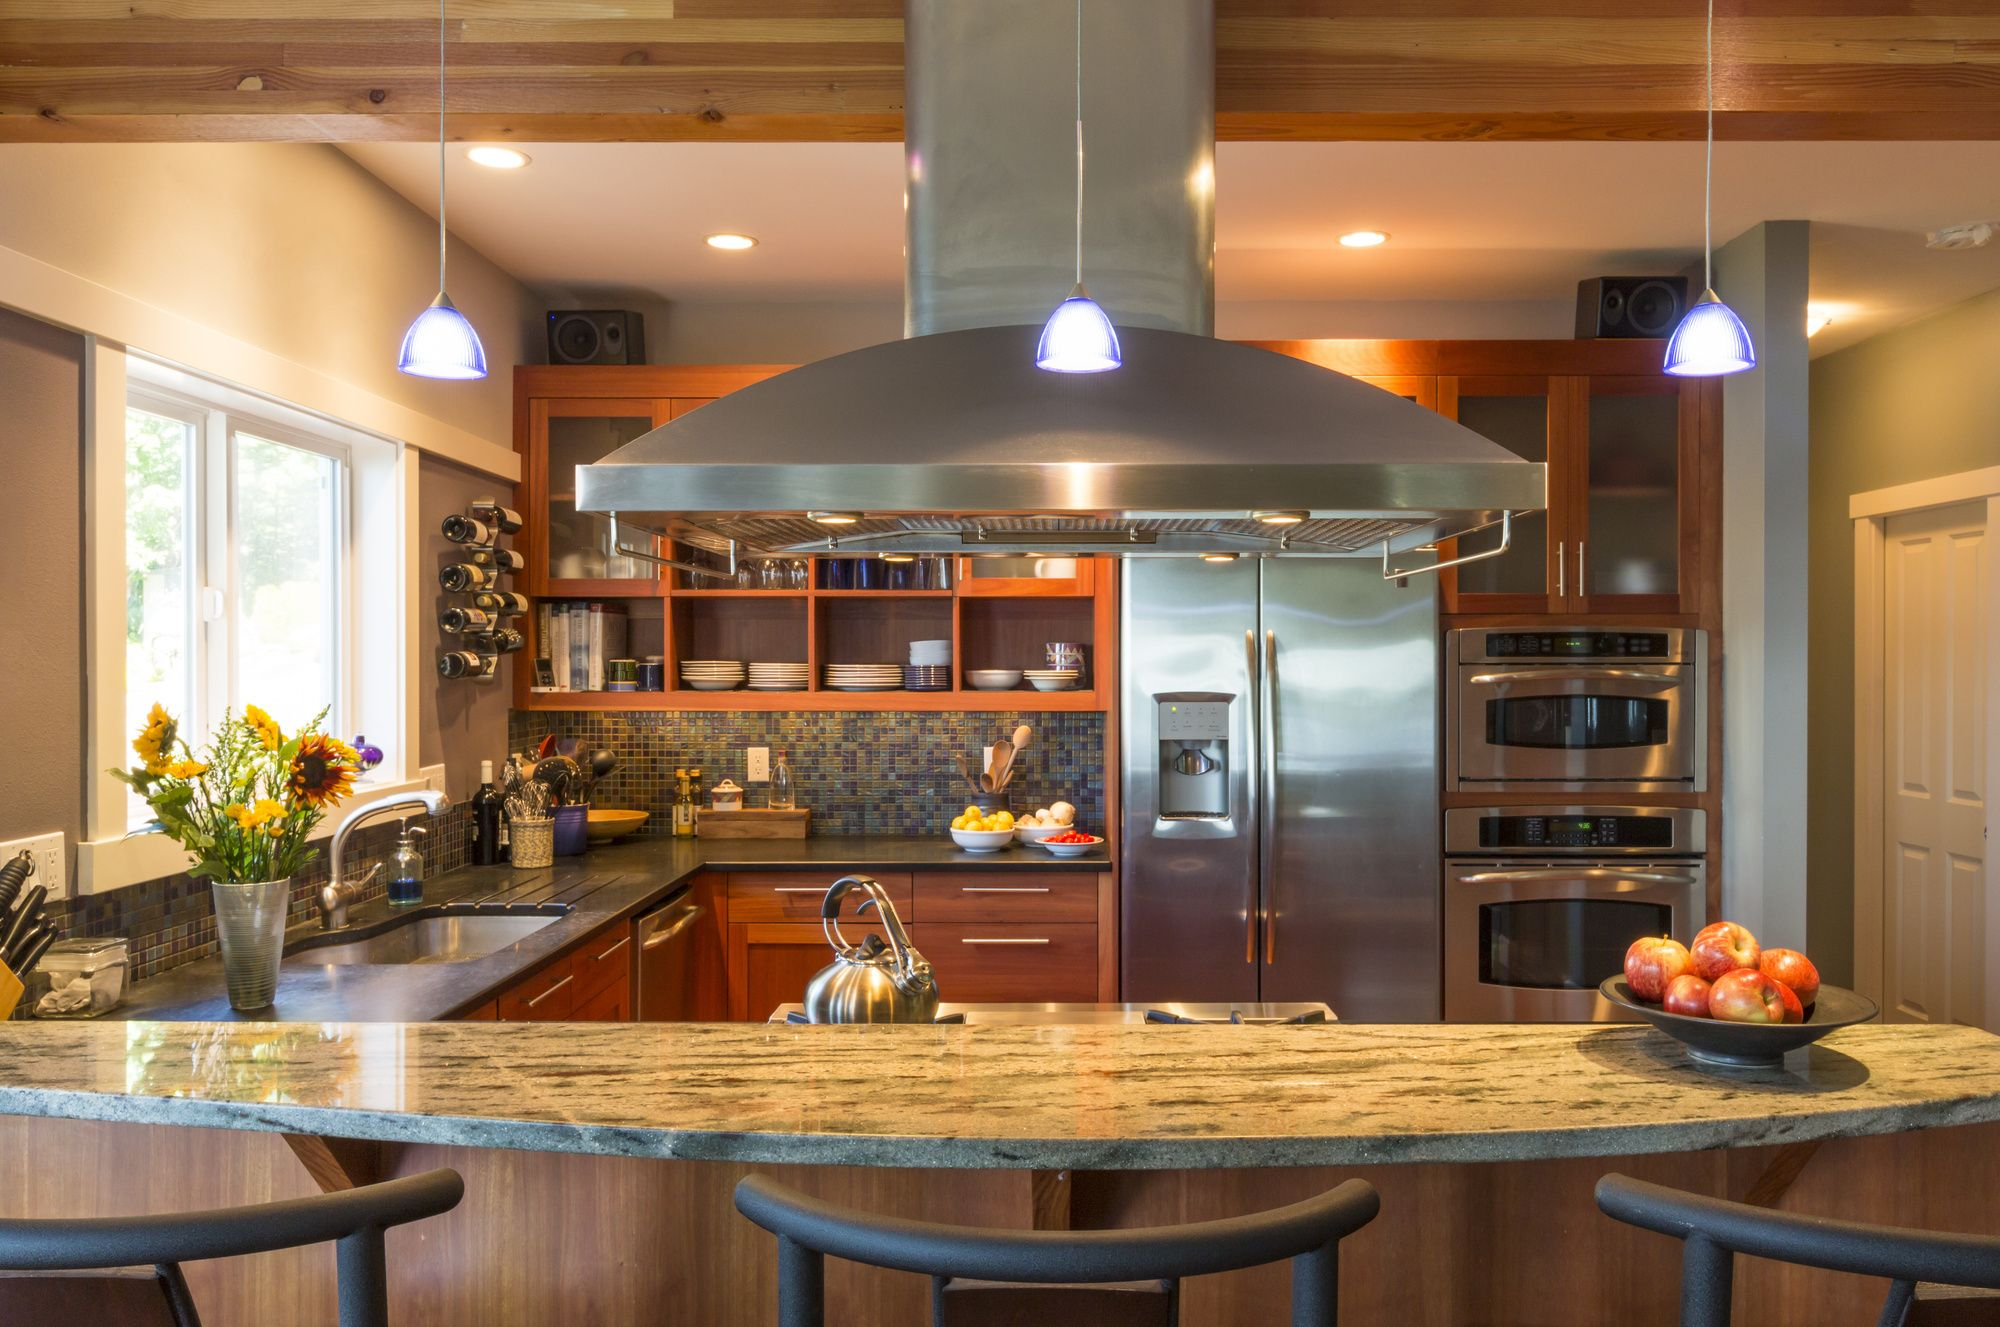 The Best Kitchen Countertops The Best Counter Materials For Your